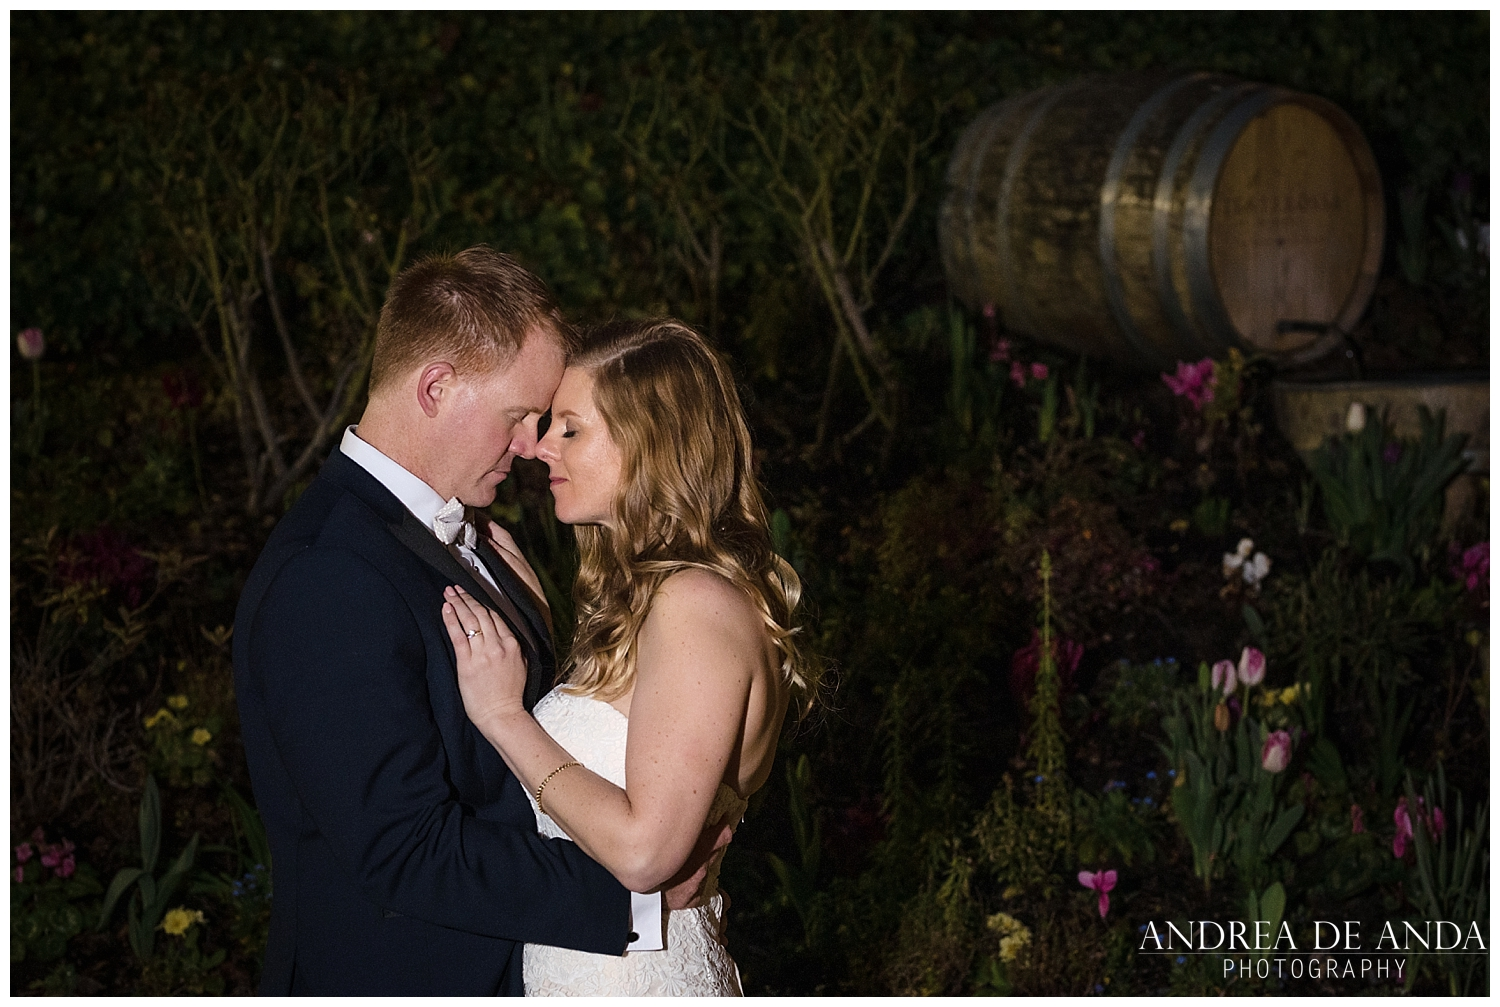 Testarossa Winery Winter Wedding by Andrea de Anda Photography_-33.jpg